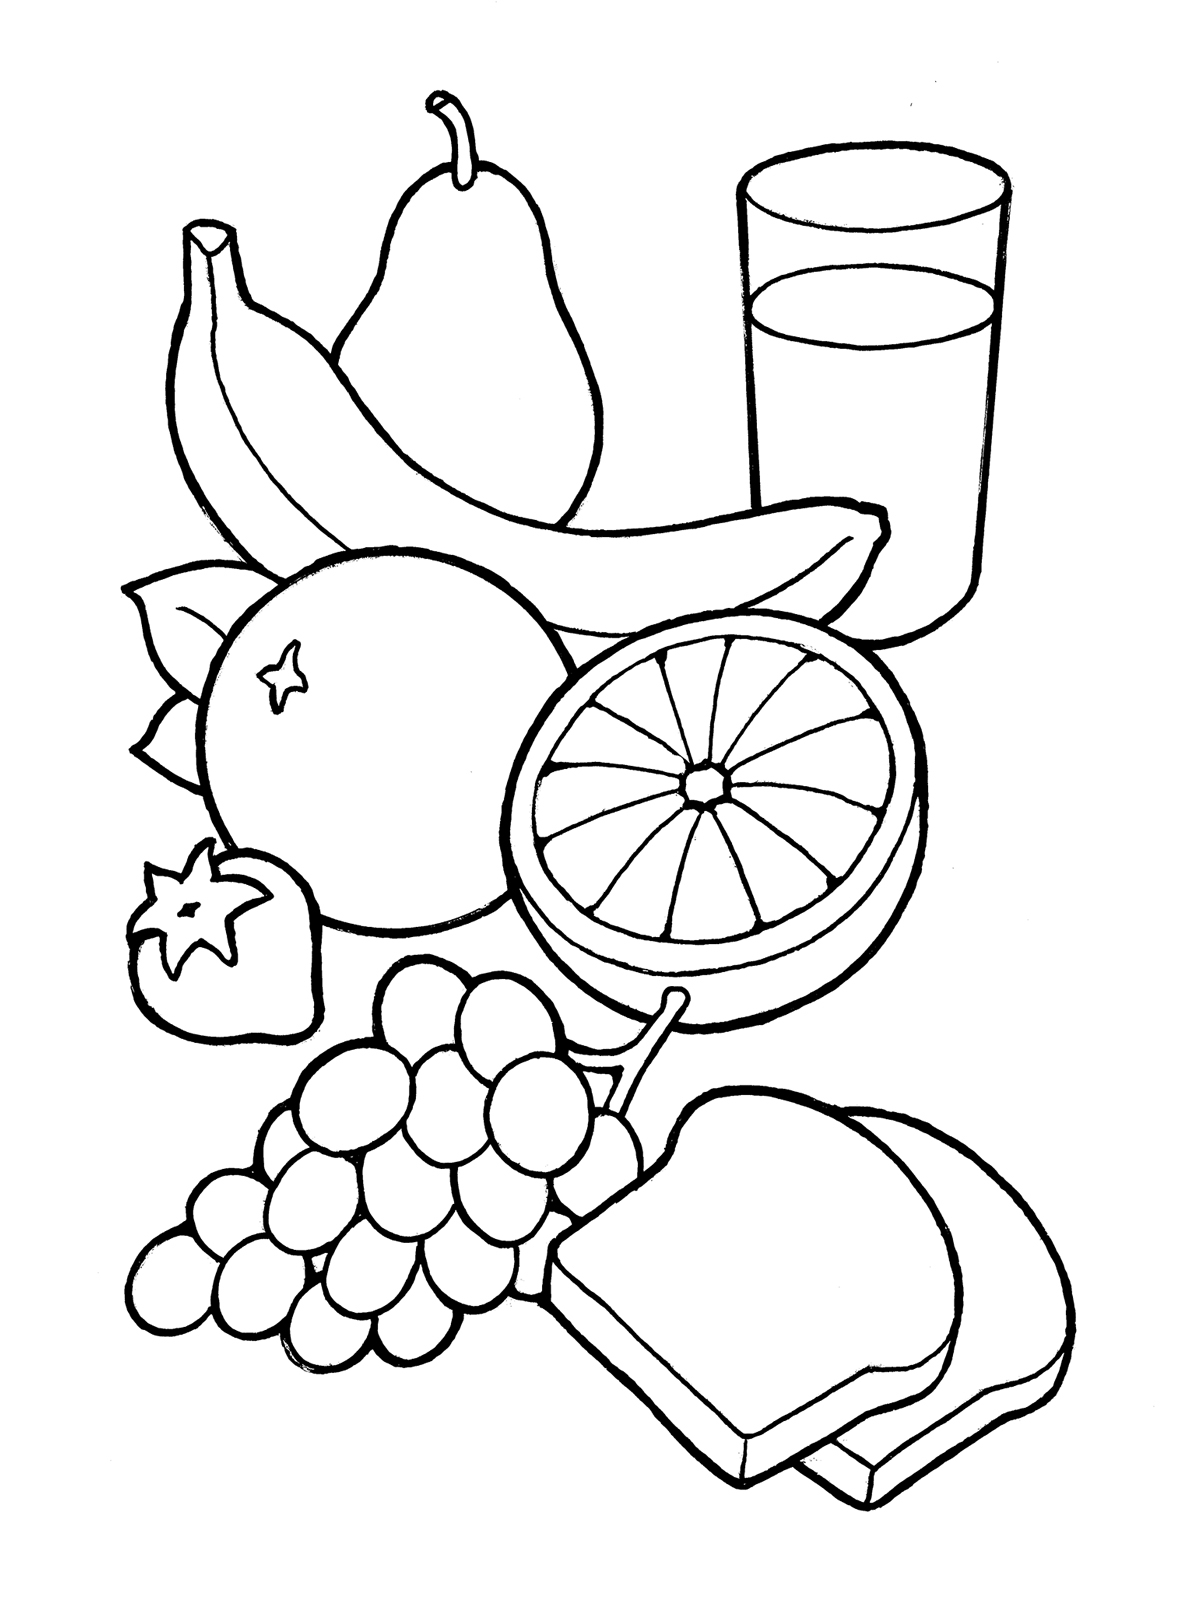 Praying Hands Rosary Clipart in addition Praying Mantis together with Page also Org further Count Your Blessings Collage. on praying coloring page